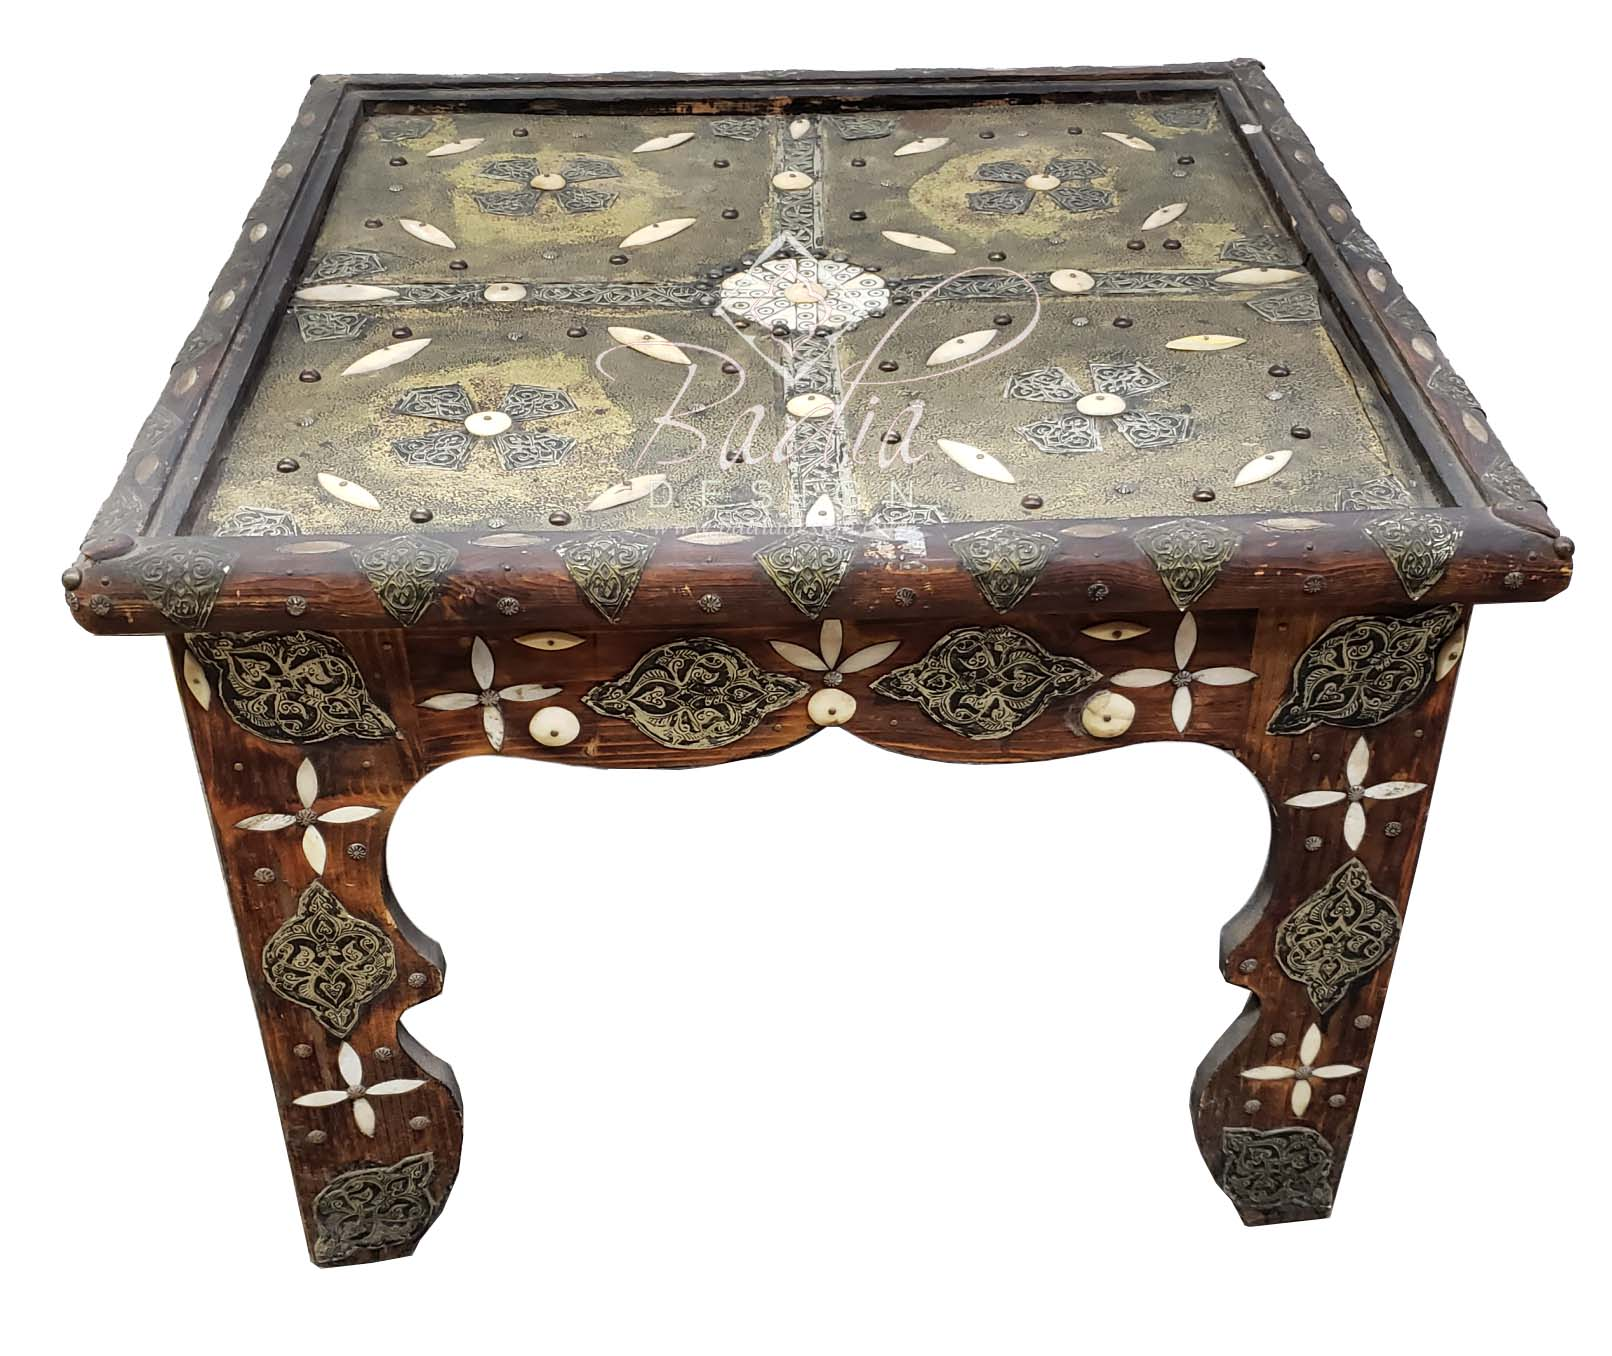 moroccan-square-shaped-metal-and-white-bone-coffee-table-mb-ct017.jpg